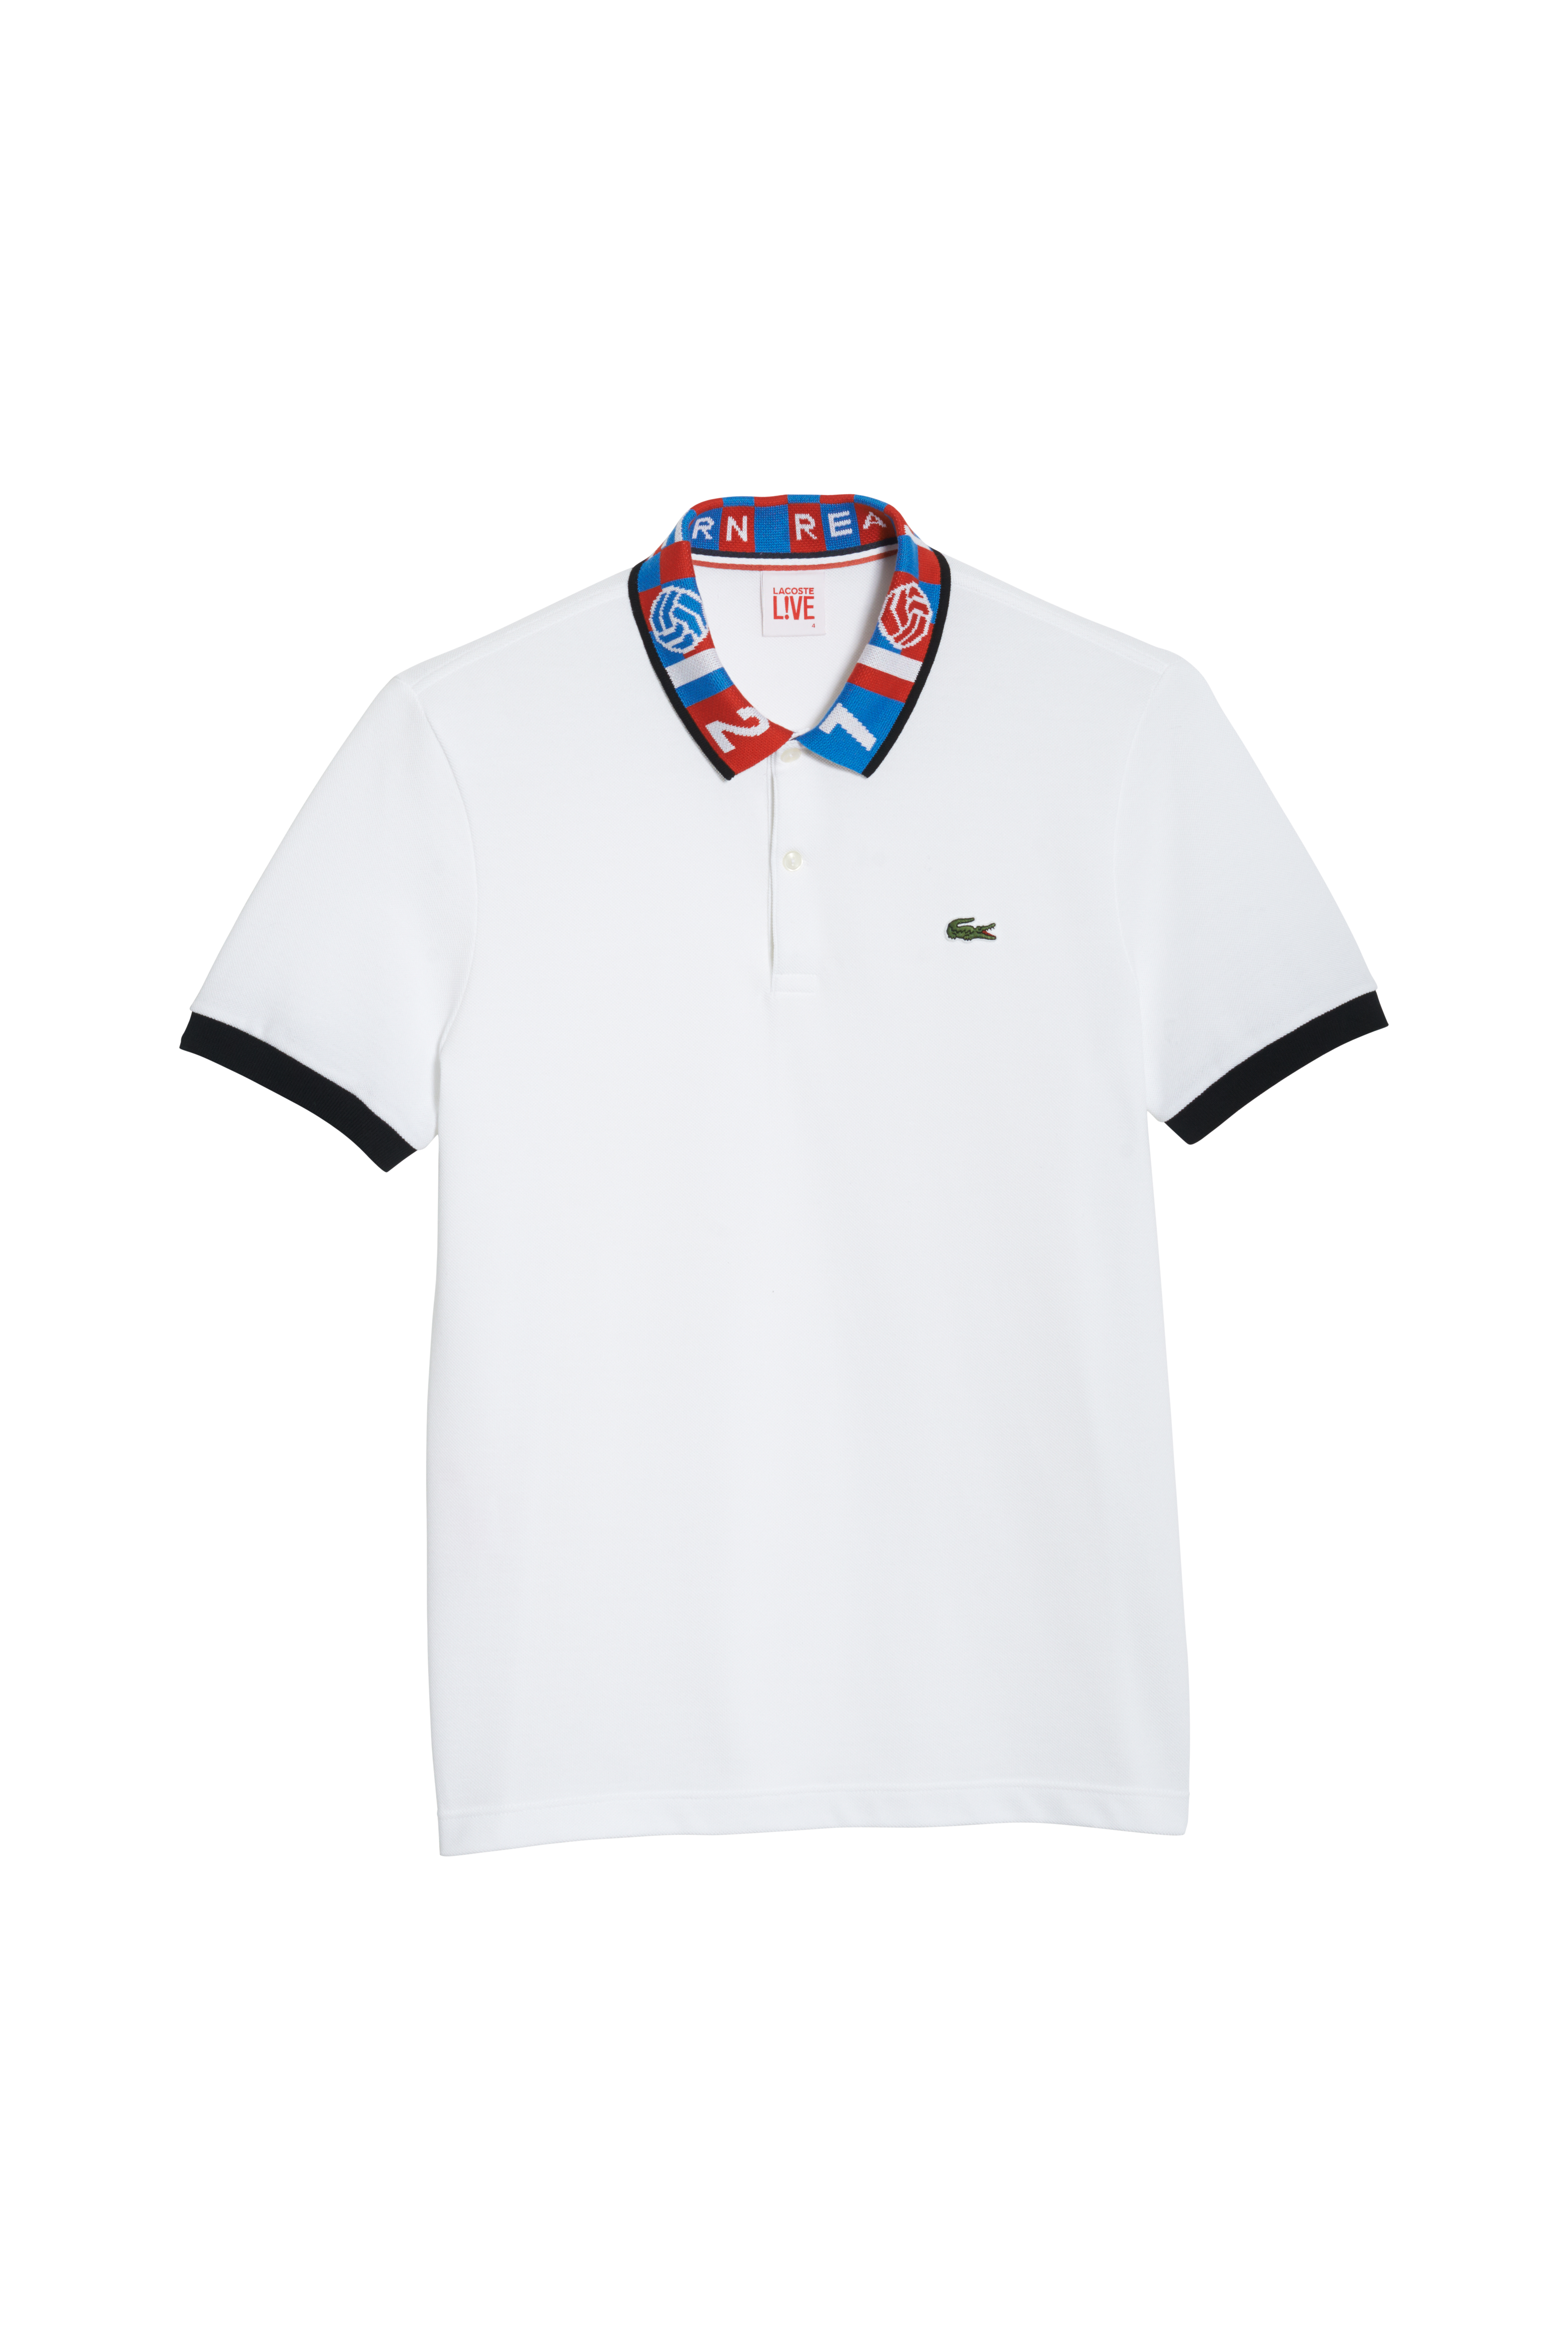 04_SS14_LACOSTE_LIVE_BY_SANGHON_KIM_-_Mens_Polo_Shirt_PH3845-OP